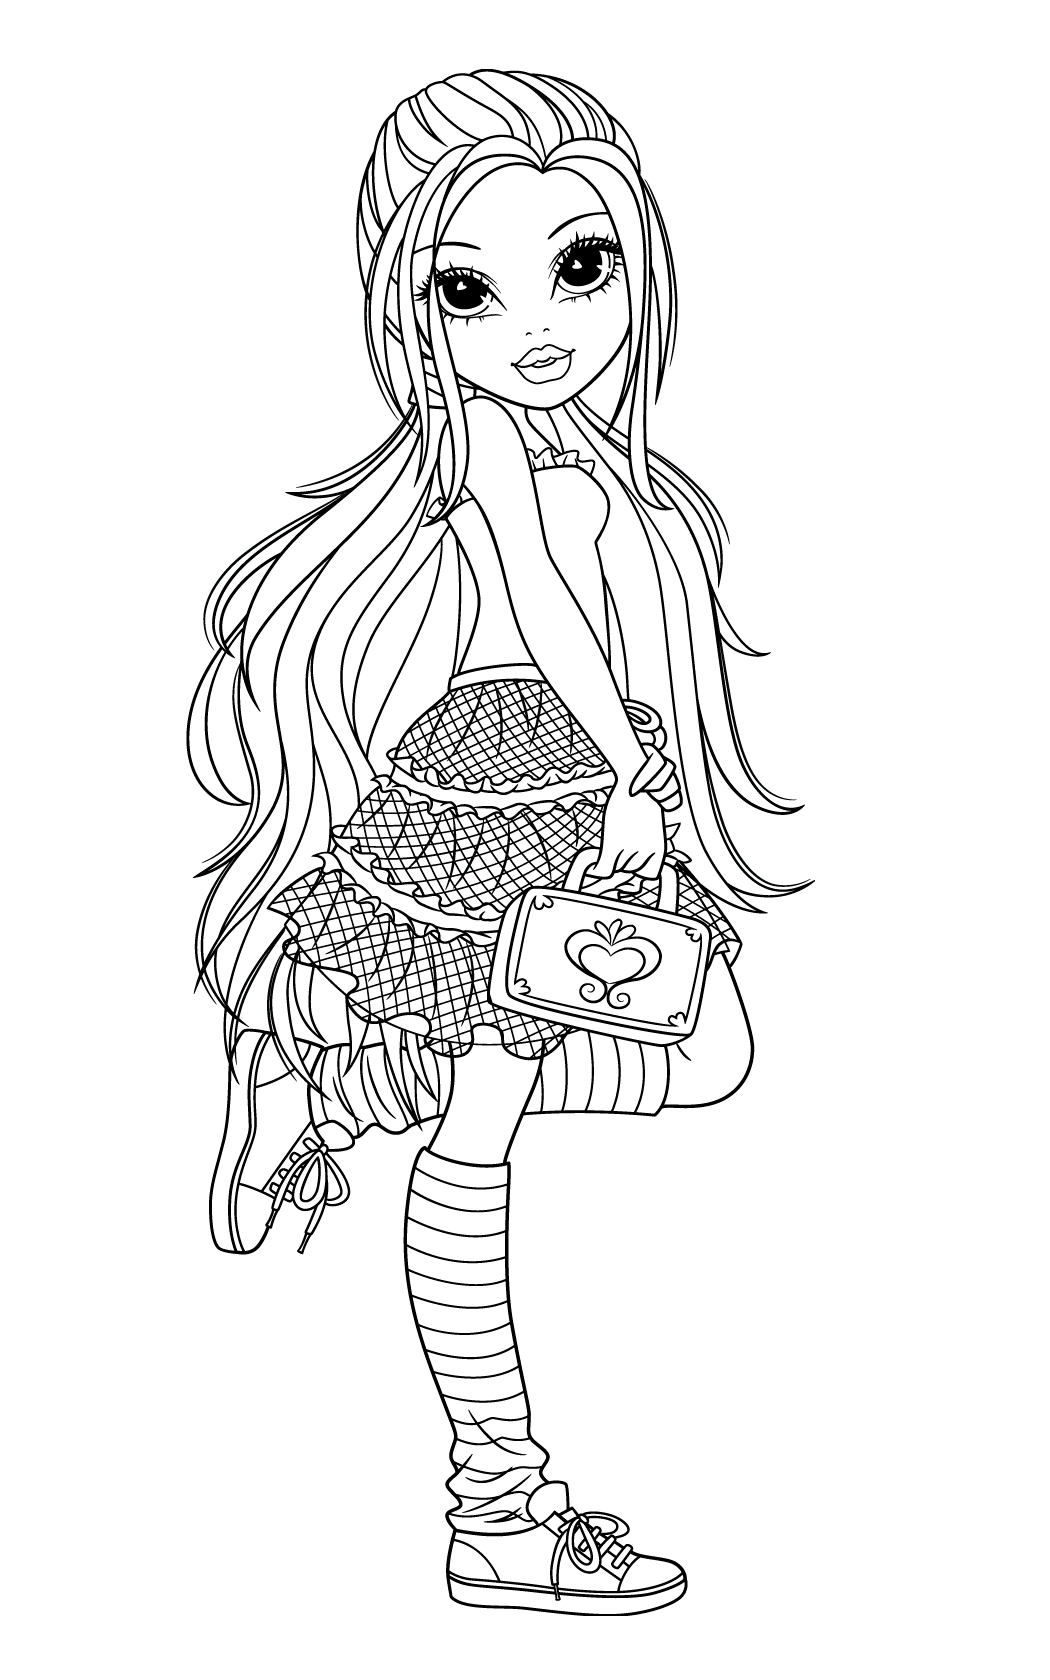 moxiegirlzcoloringpages Coloring pages, Colorful